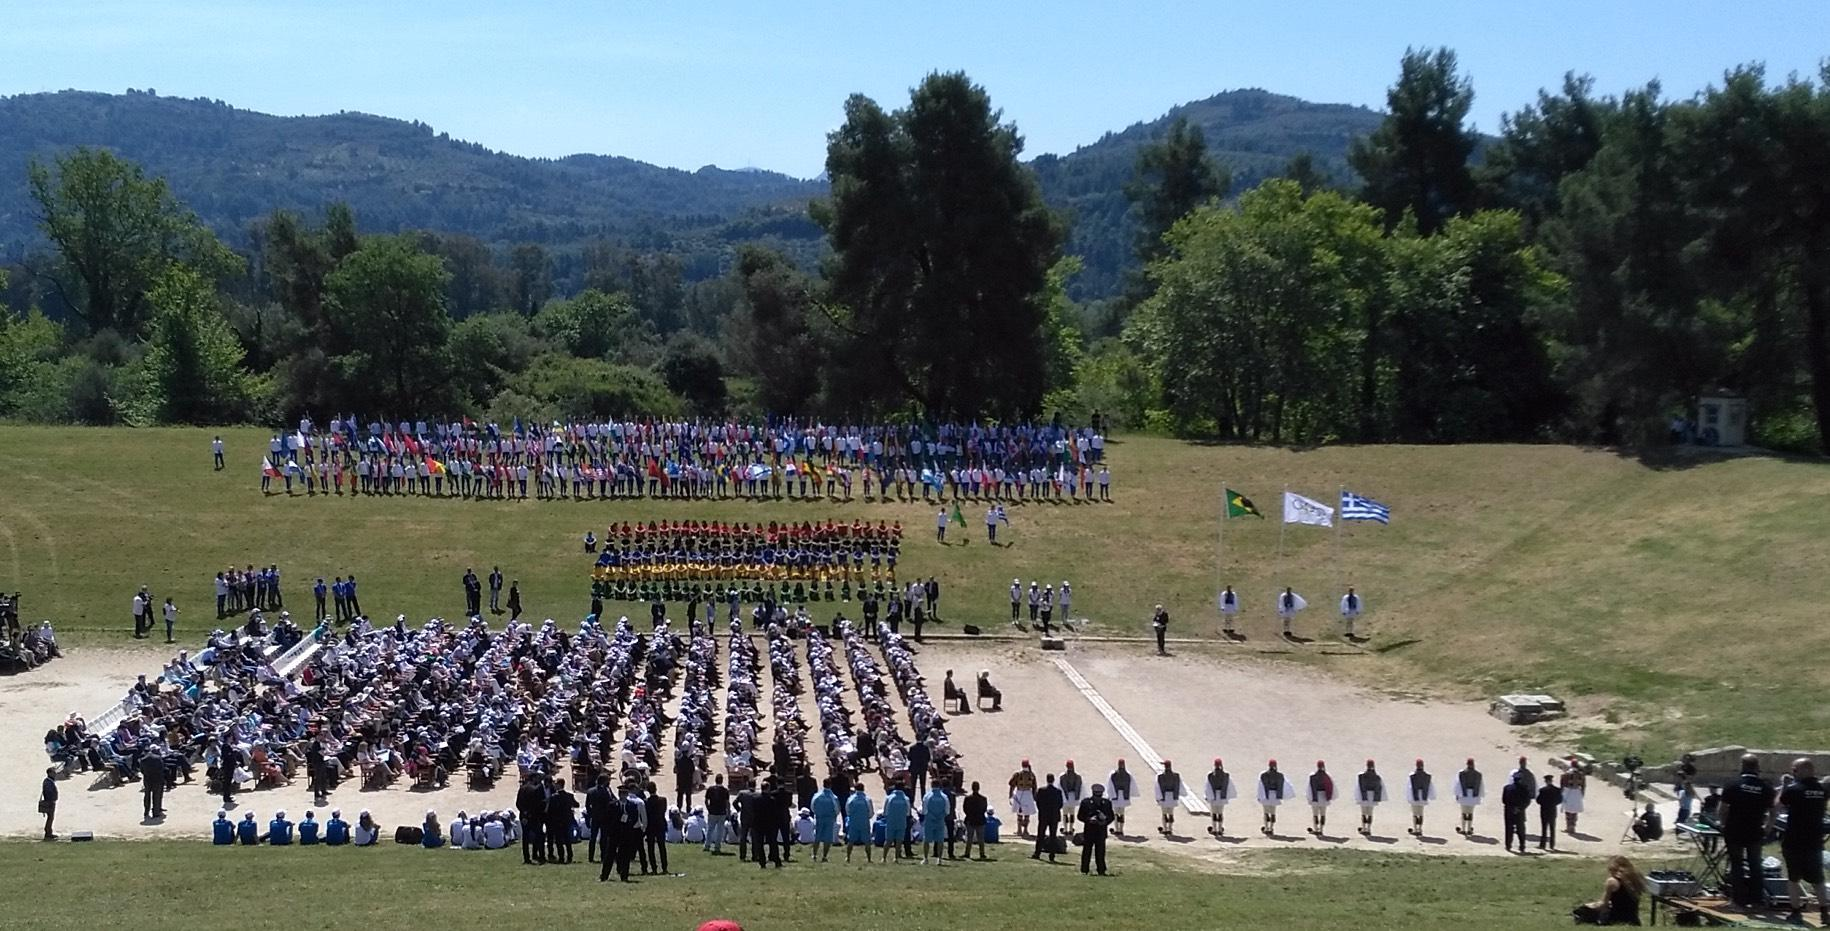 Officials and representatives of the Hellenic Republic, of the Olympic Movement and the local authorities attend the ceremony in the Stadium of Olympia. – © Hellenic Ministry of Culture and Sports / Ephorate of Antiquities of Ilia